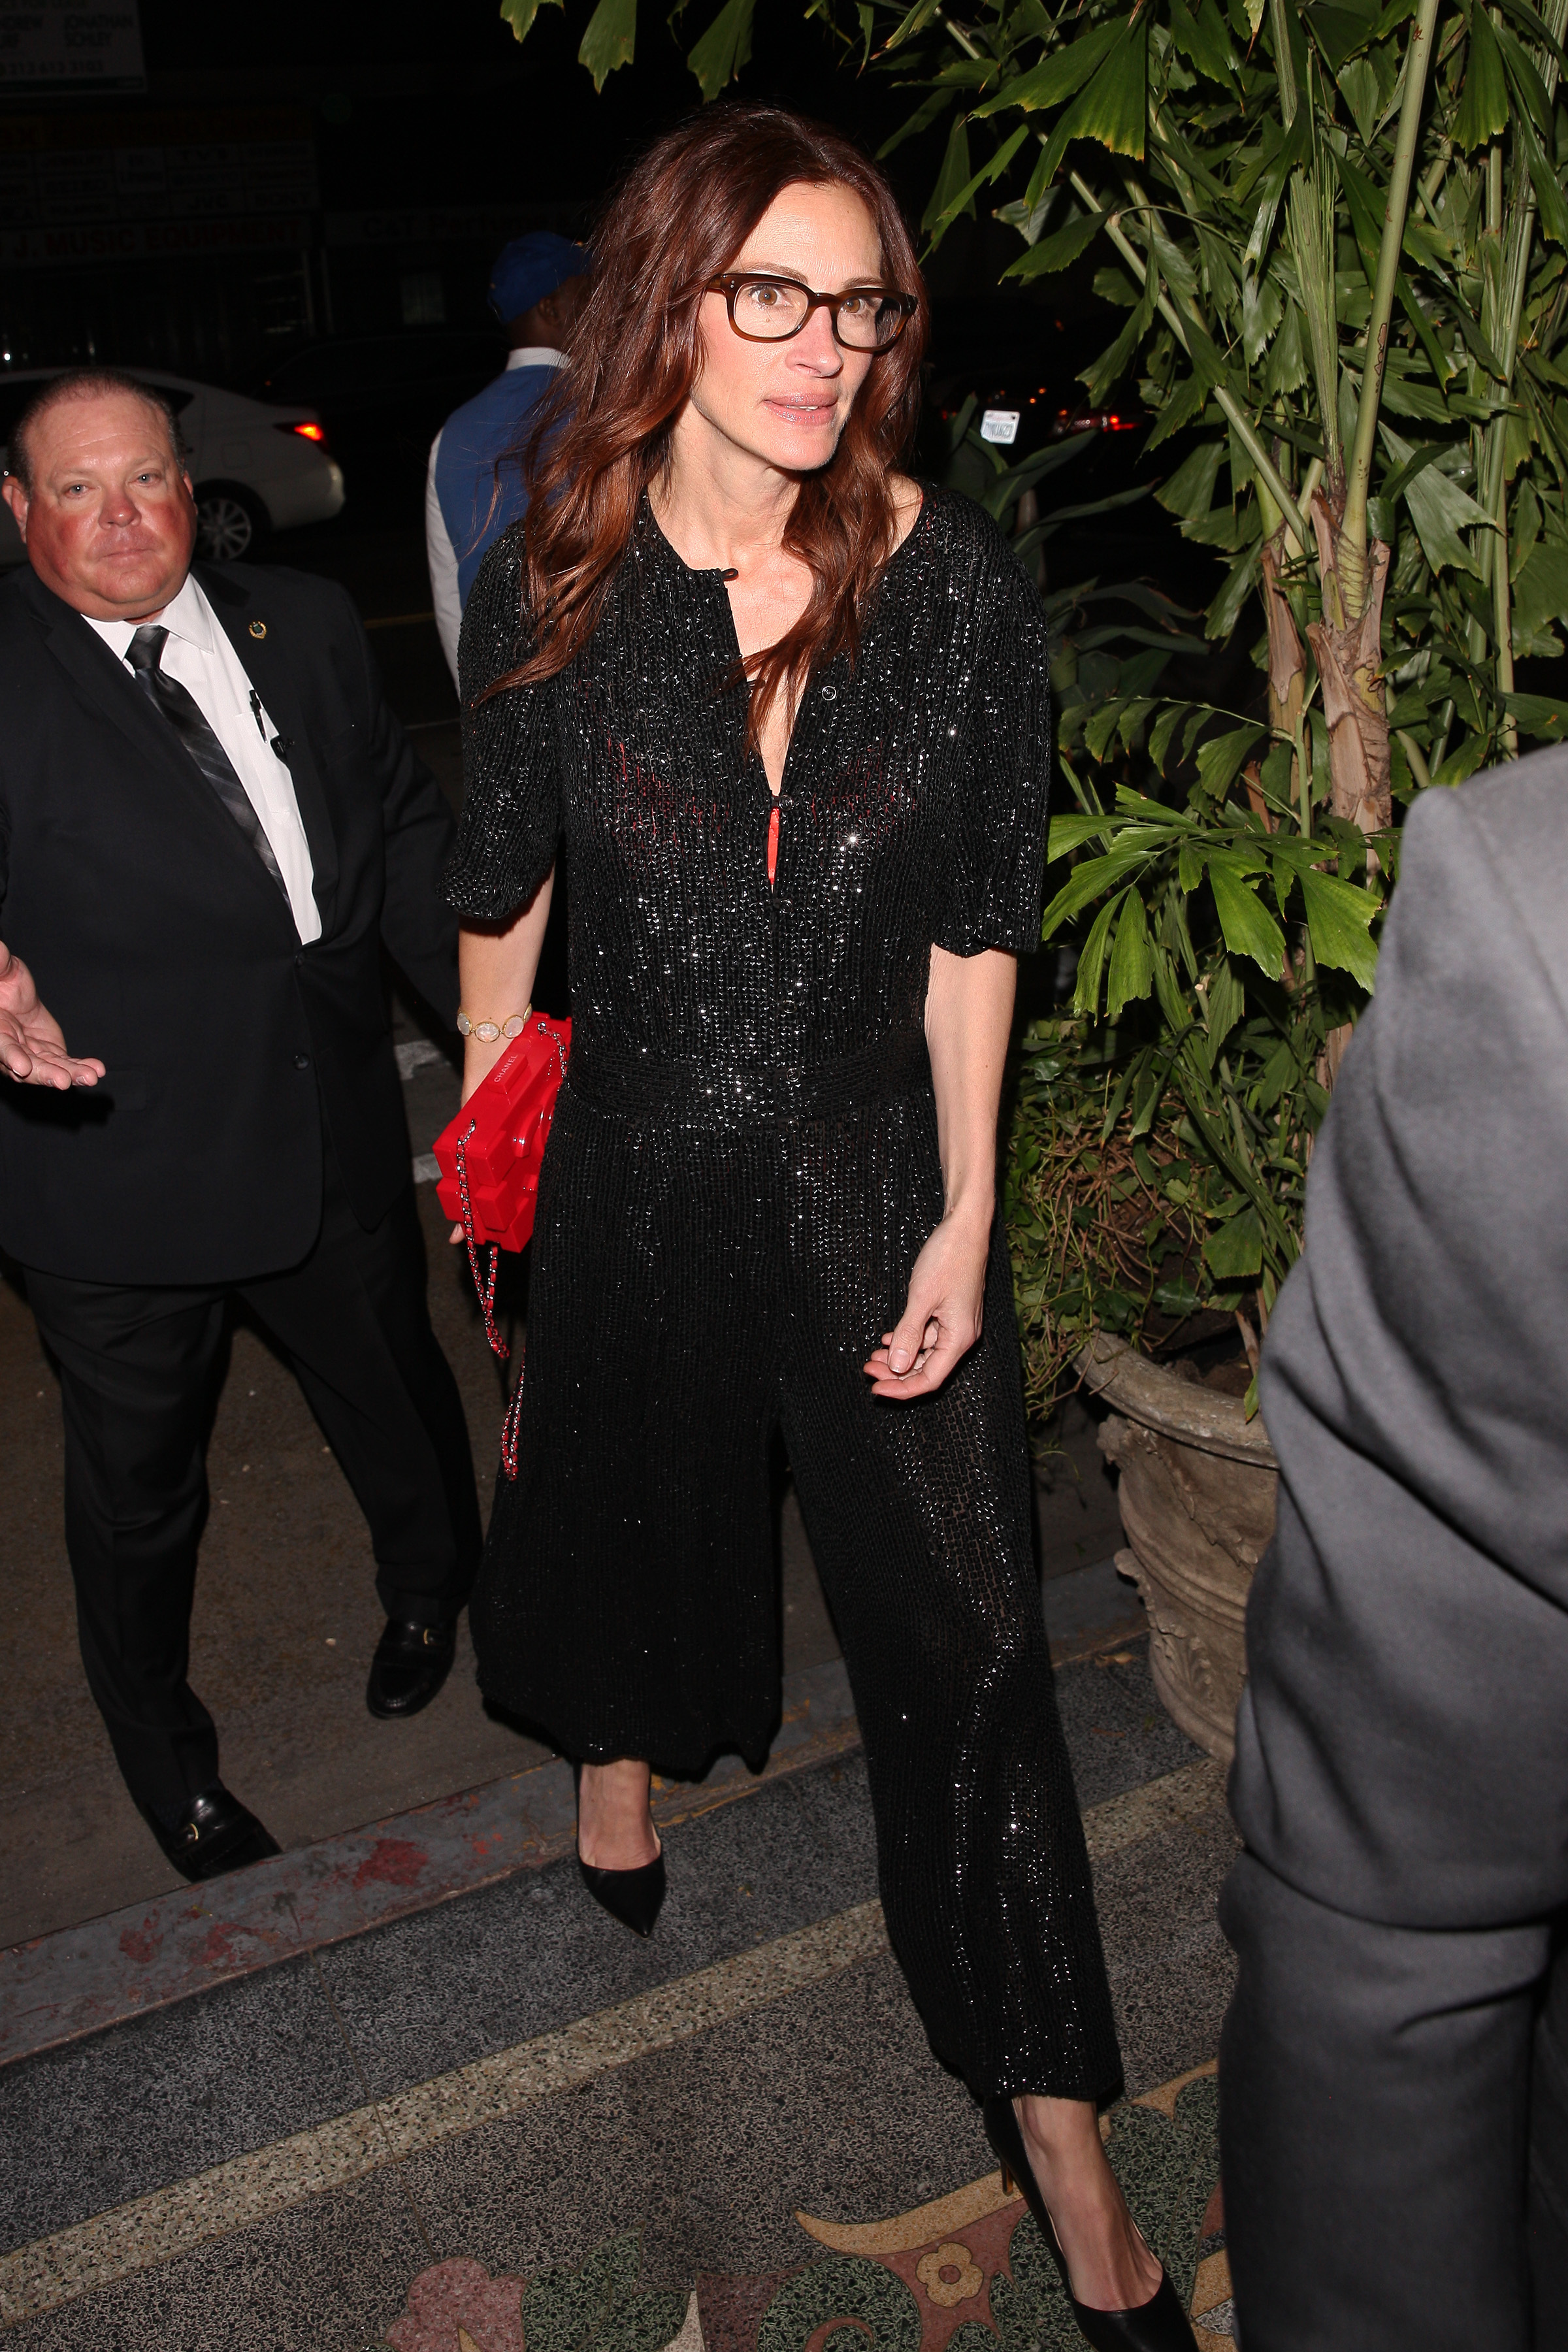 Julia Roberts arrives at Gwyneth Paltrow and Brad Falchuk's engagement party at the Los Angeles Theater in downtown L.A. on April 14, 2018.